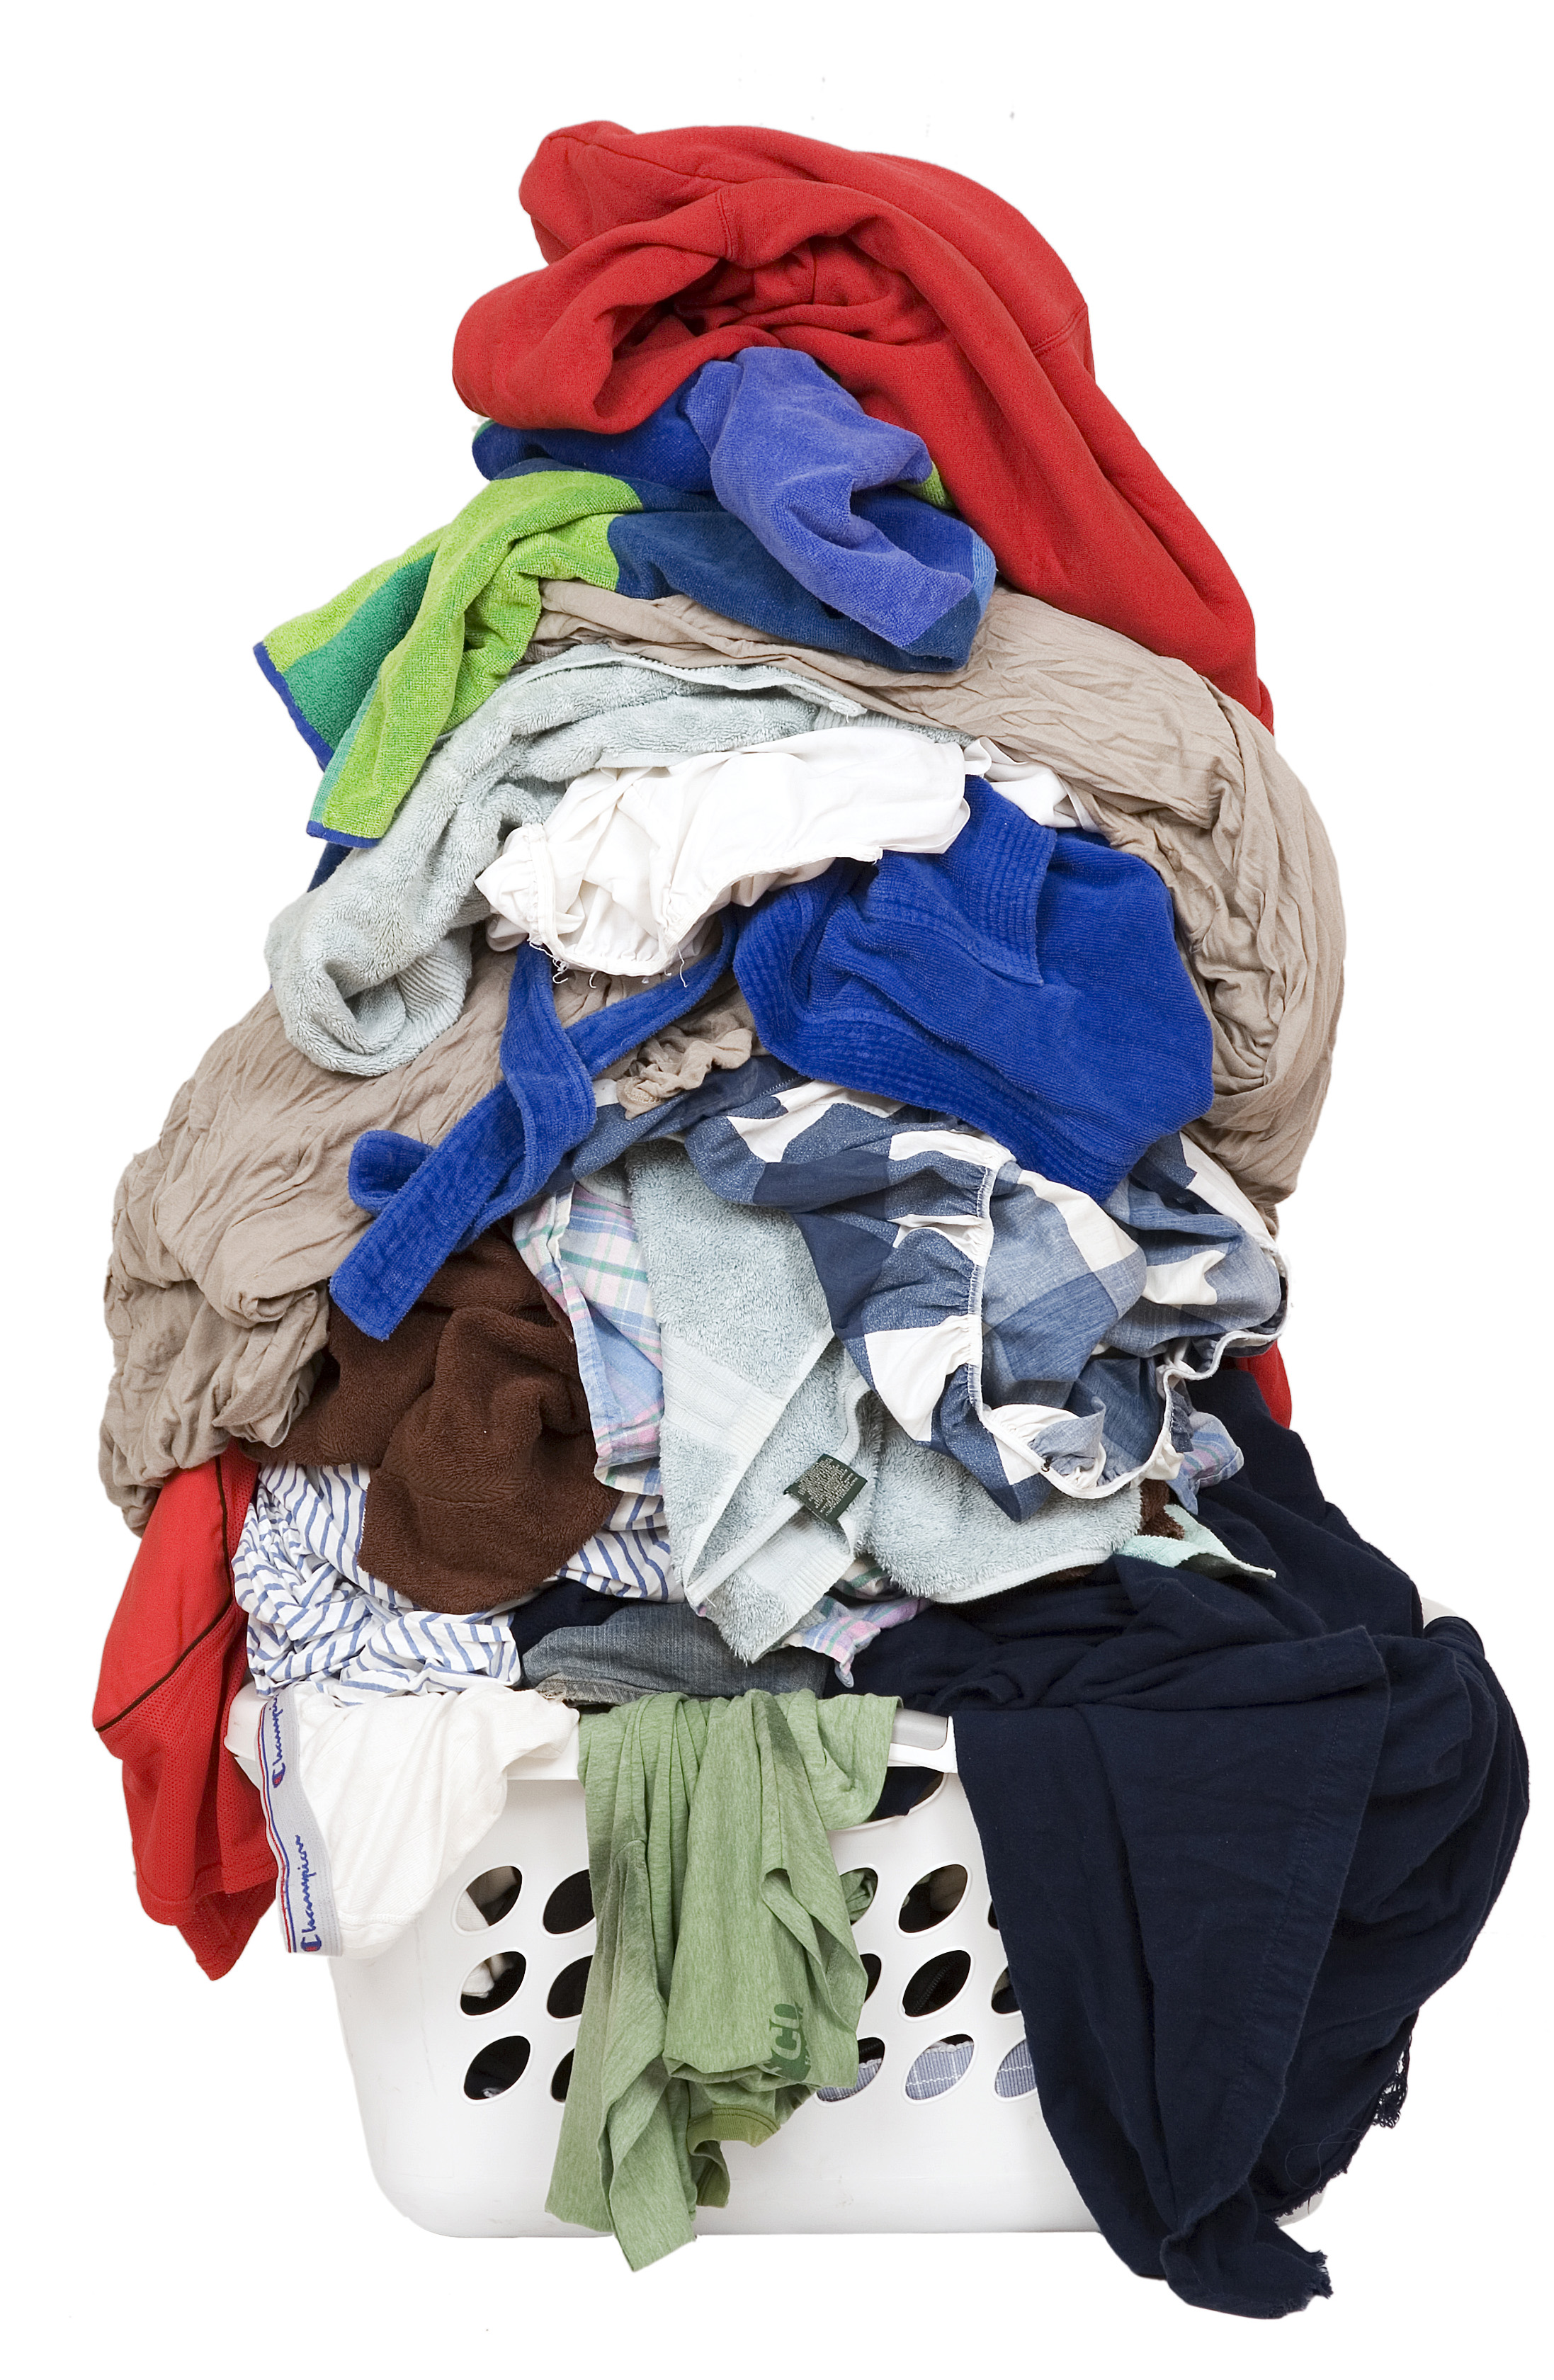 Dirty Laundry Baskets 5 Tips To Keep The Laundry Caught Up Operation Wife